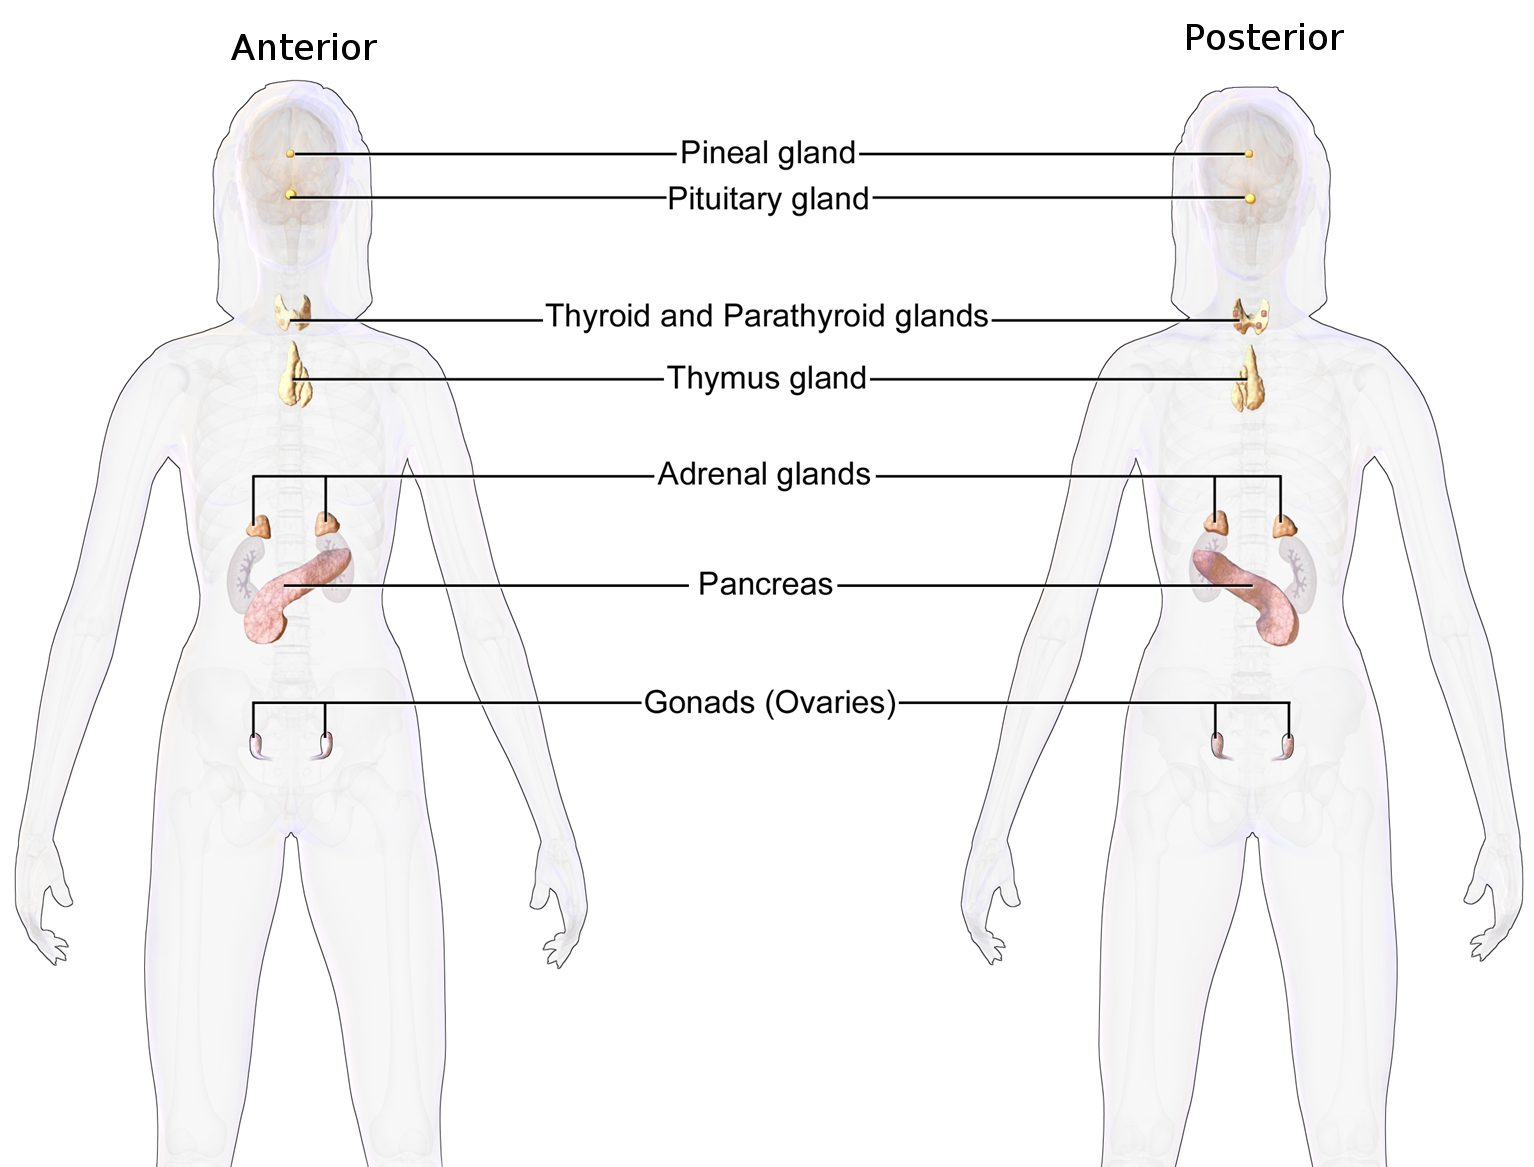 endocrine system functions - Essay: The Endocrine System and Its Various Functions